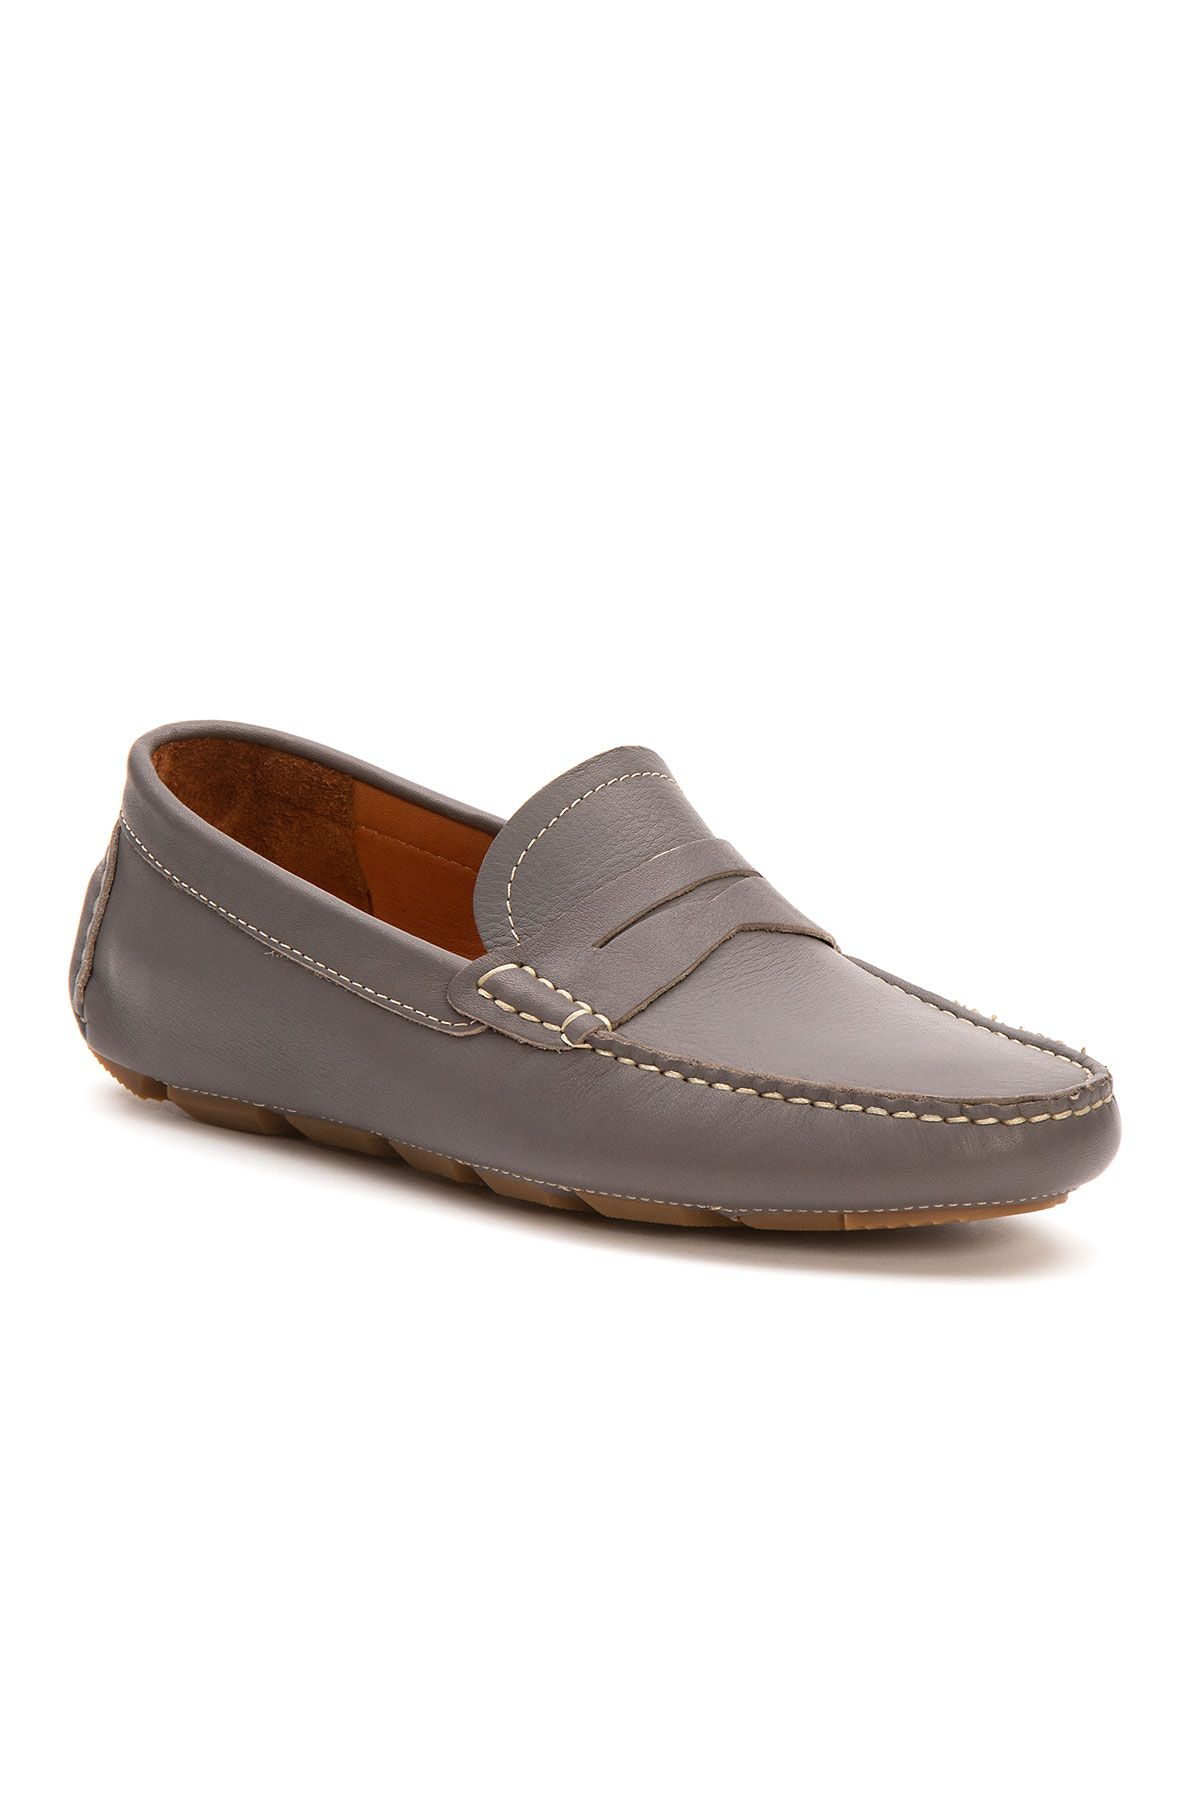 Pegia Genuine Leather Men's Loafer Shoes 500905 Gray